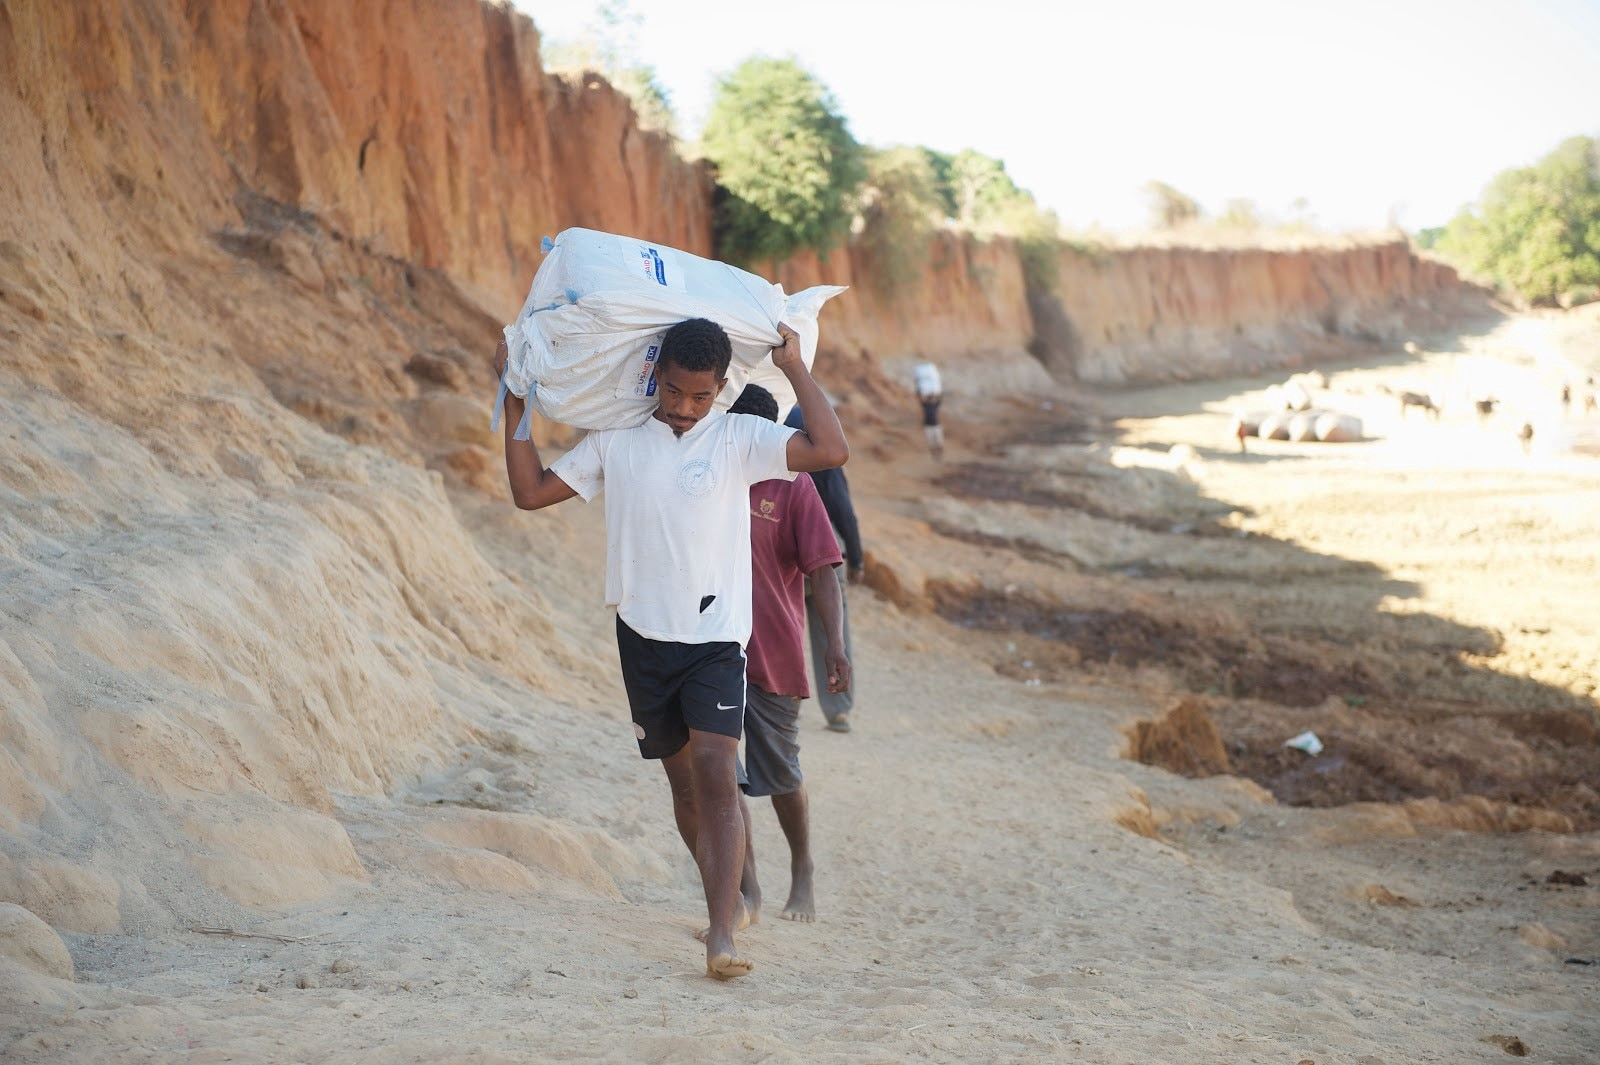 Malaria nets are carried by back during the final leg of the delivery journey. (Lan Andrian, USAID Global Health Supply Chain Program—Procurement and Supply Management)